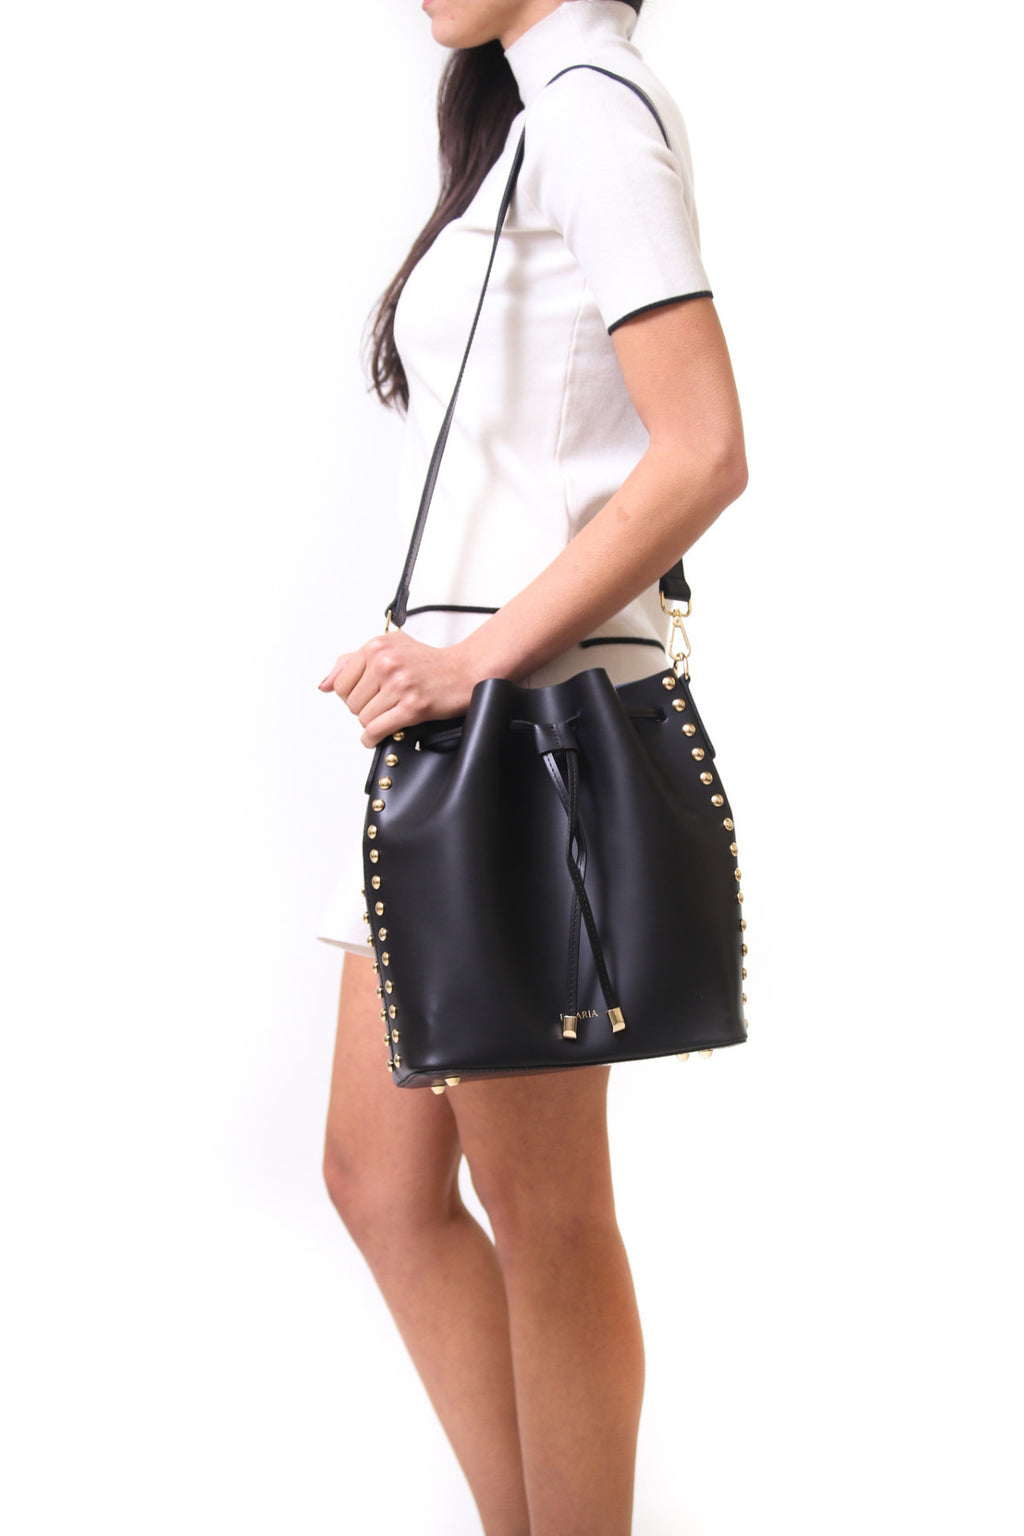 Emelia black stud leather bucket bag - ELEARIA